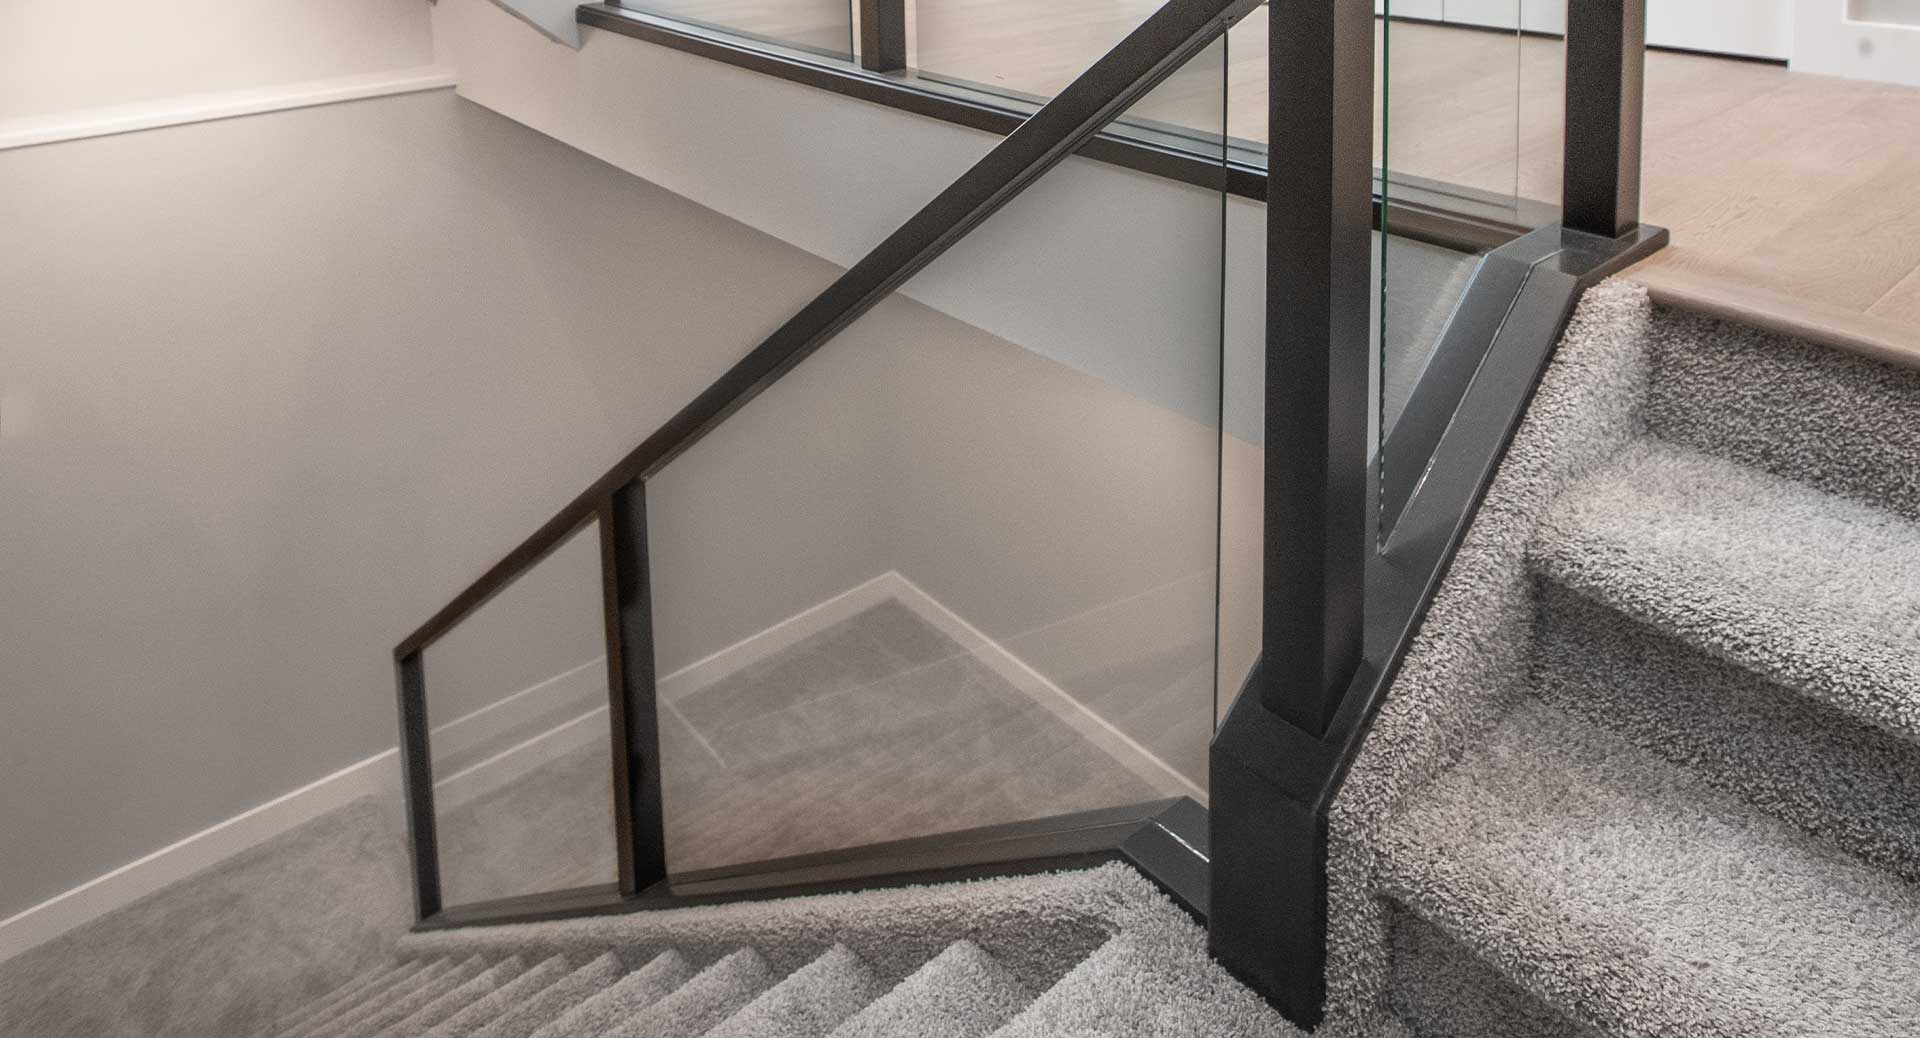 edmonton-home-builder-Kanvi-homes-finished-stairwell-to-the-basement